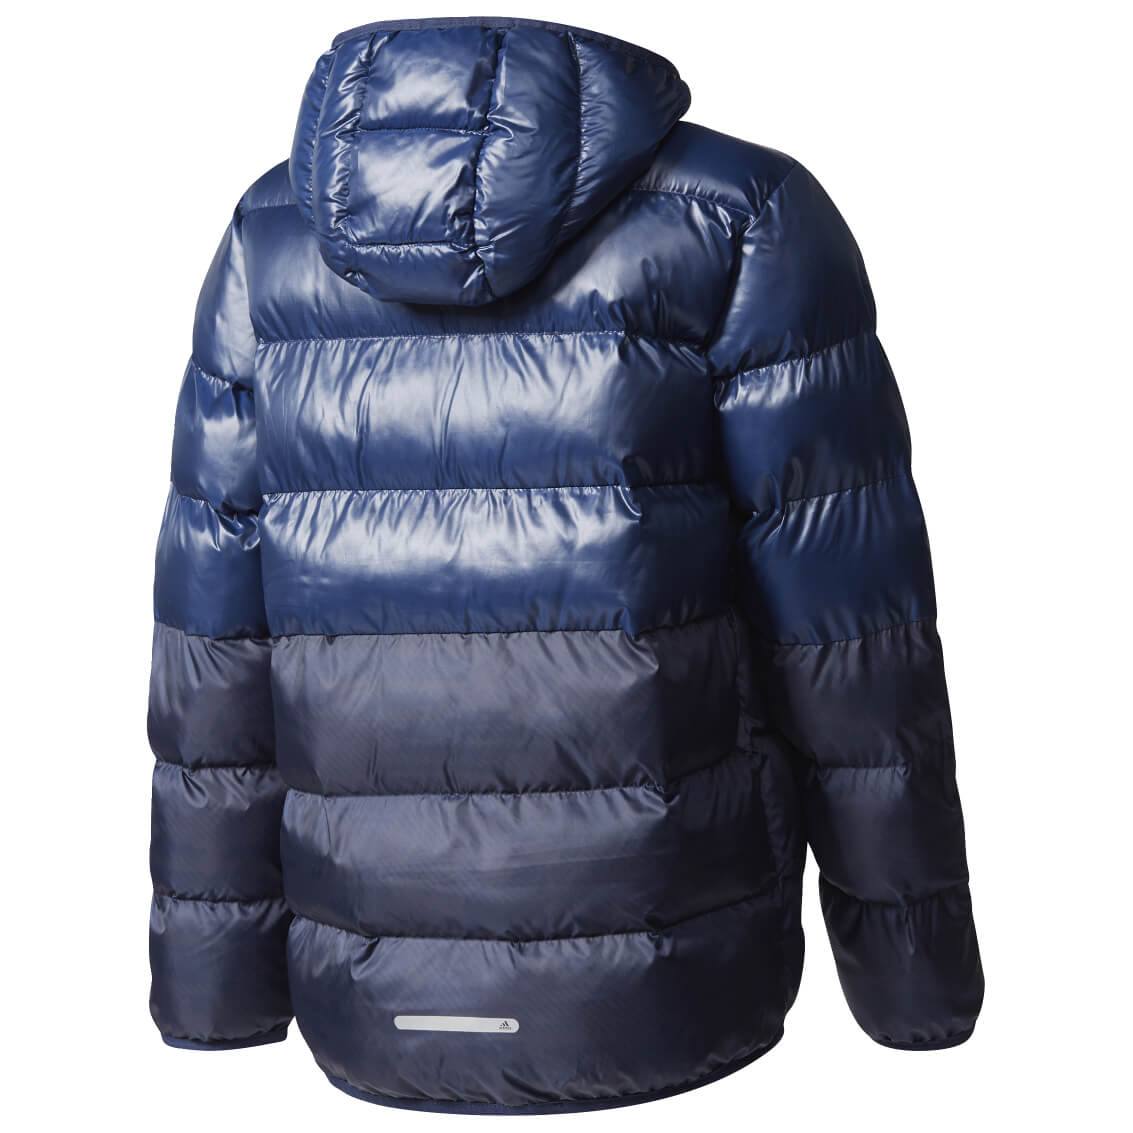 4bc3d0d72 Adidas Synthetic Down BTS Jacket - Winter Jacket Boys | Buy online ...